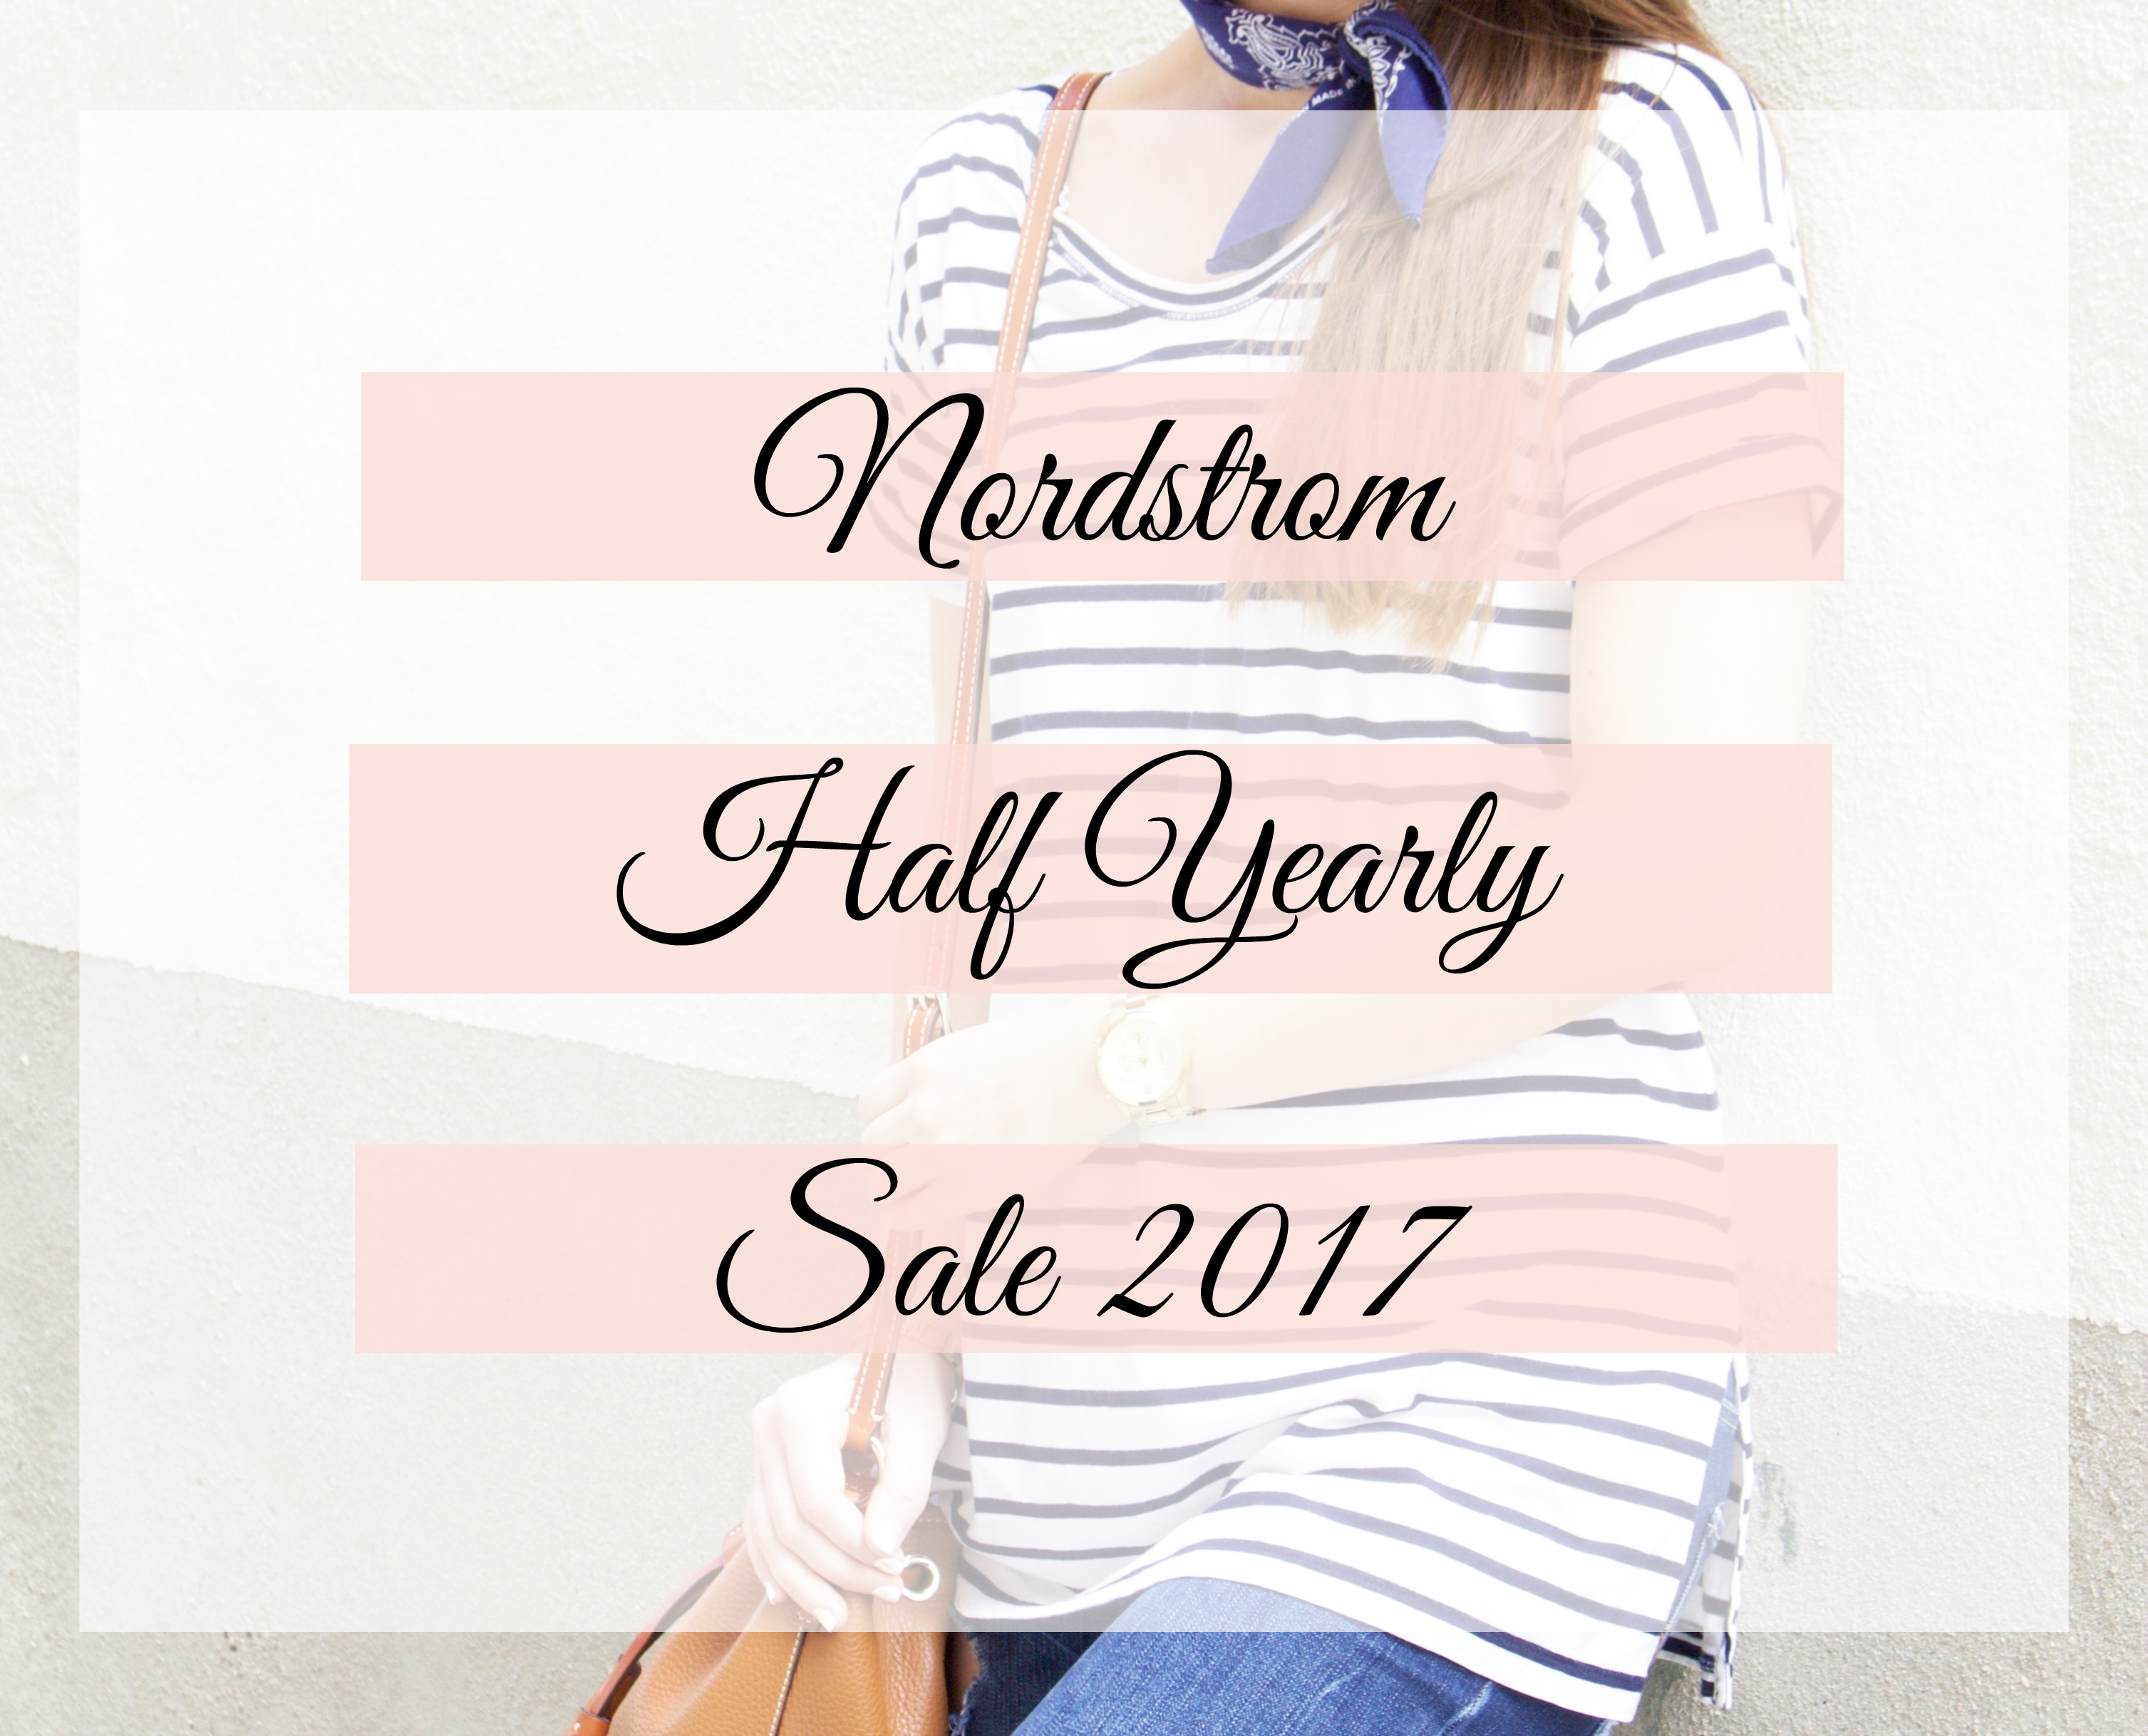 Nordstrom Half Yearly Sale 2017 picks